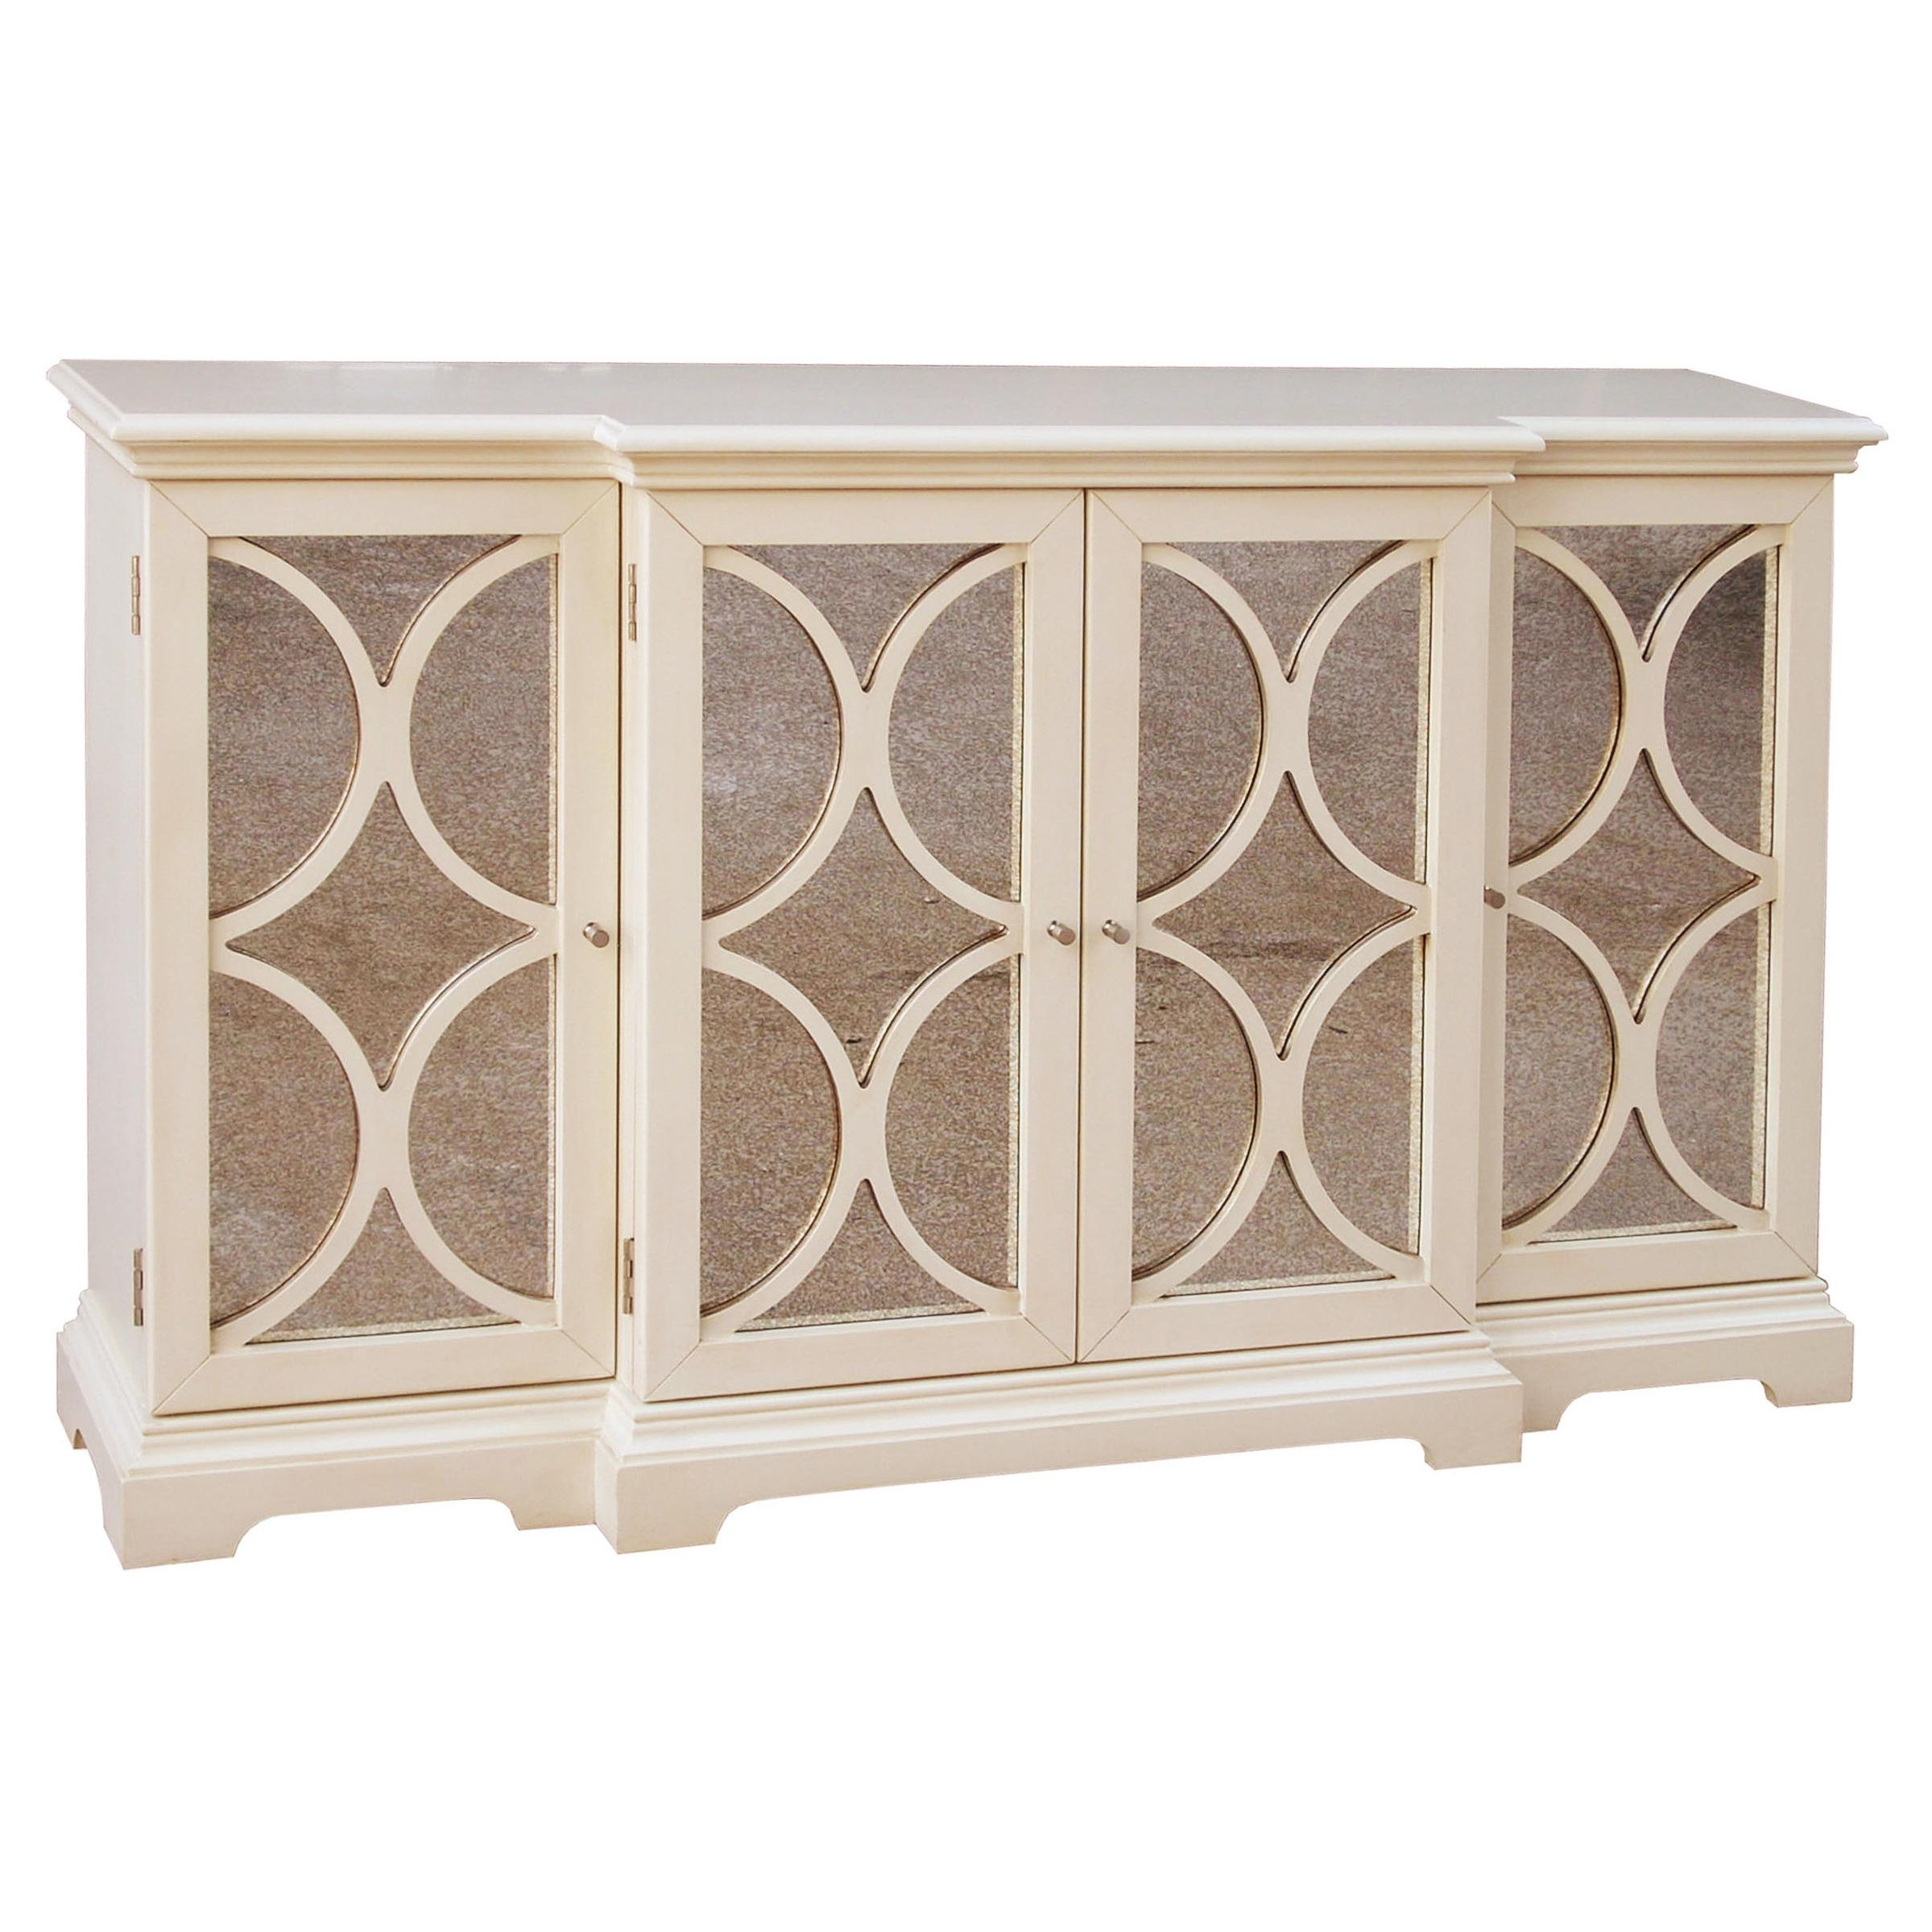 Pulaski Furniture Accents Daneuve Credenza Westrich Furniture